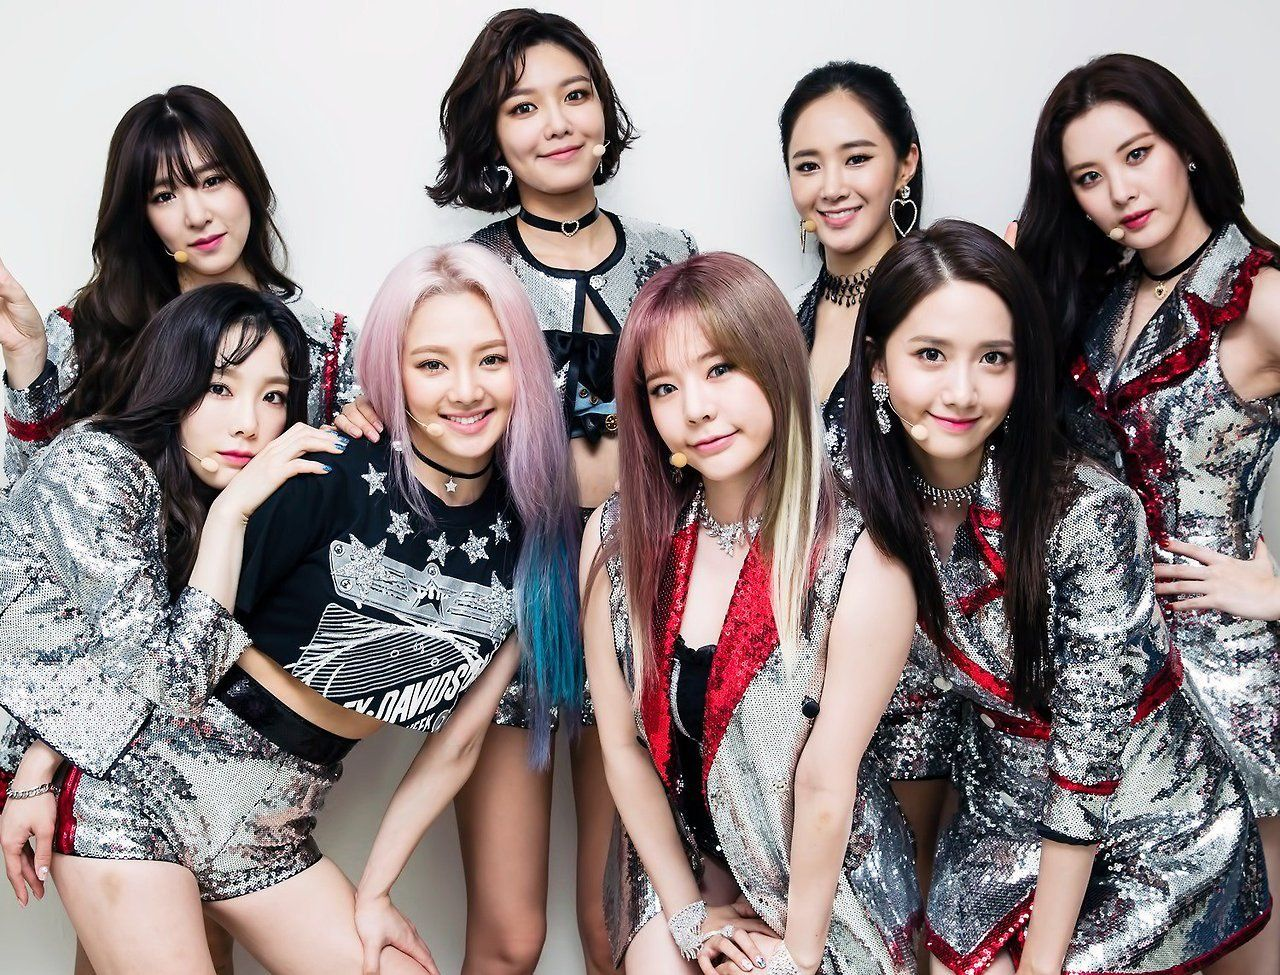 """SNSD Charts on Twitter: """"Girls' Generation and The Supremes are the only  girl groups to surpass 100 million records sold. Legends! 👏  @GirlsGeneration… https://t.co/iGY2K19KQV"""""""